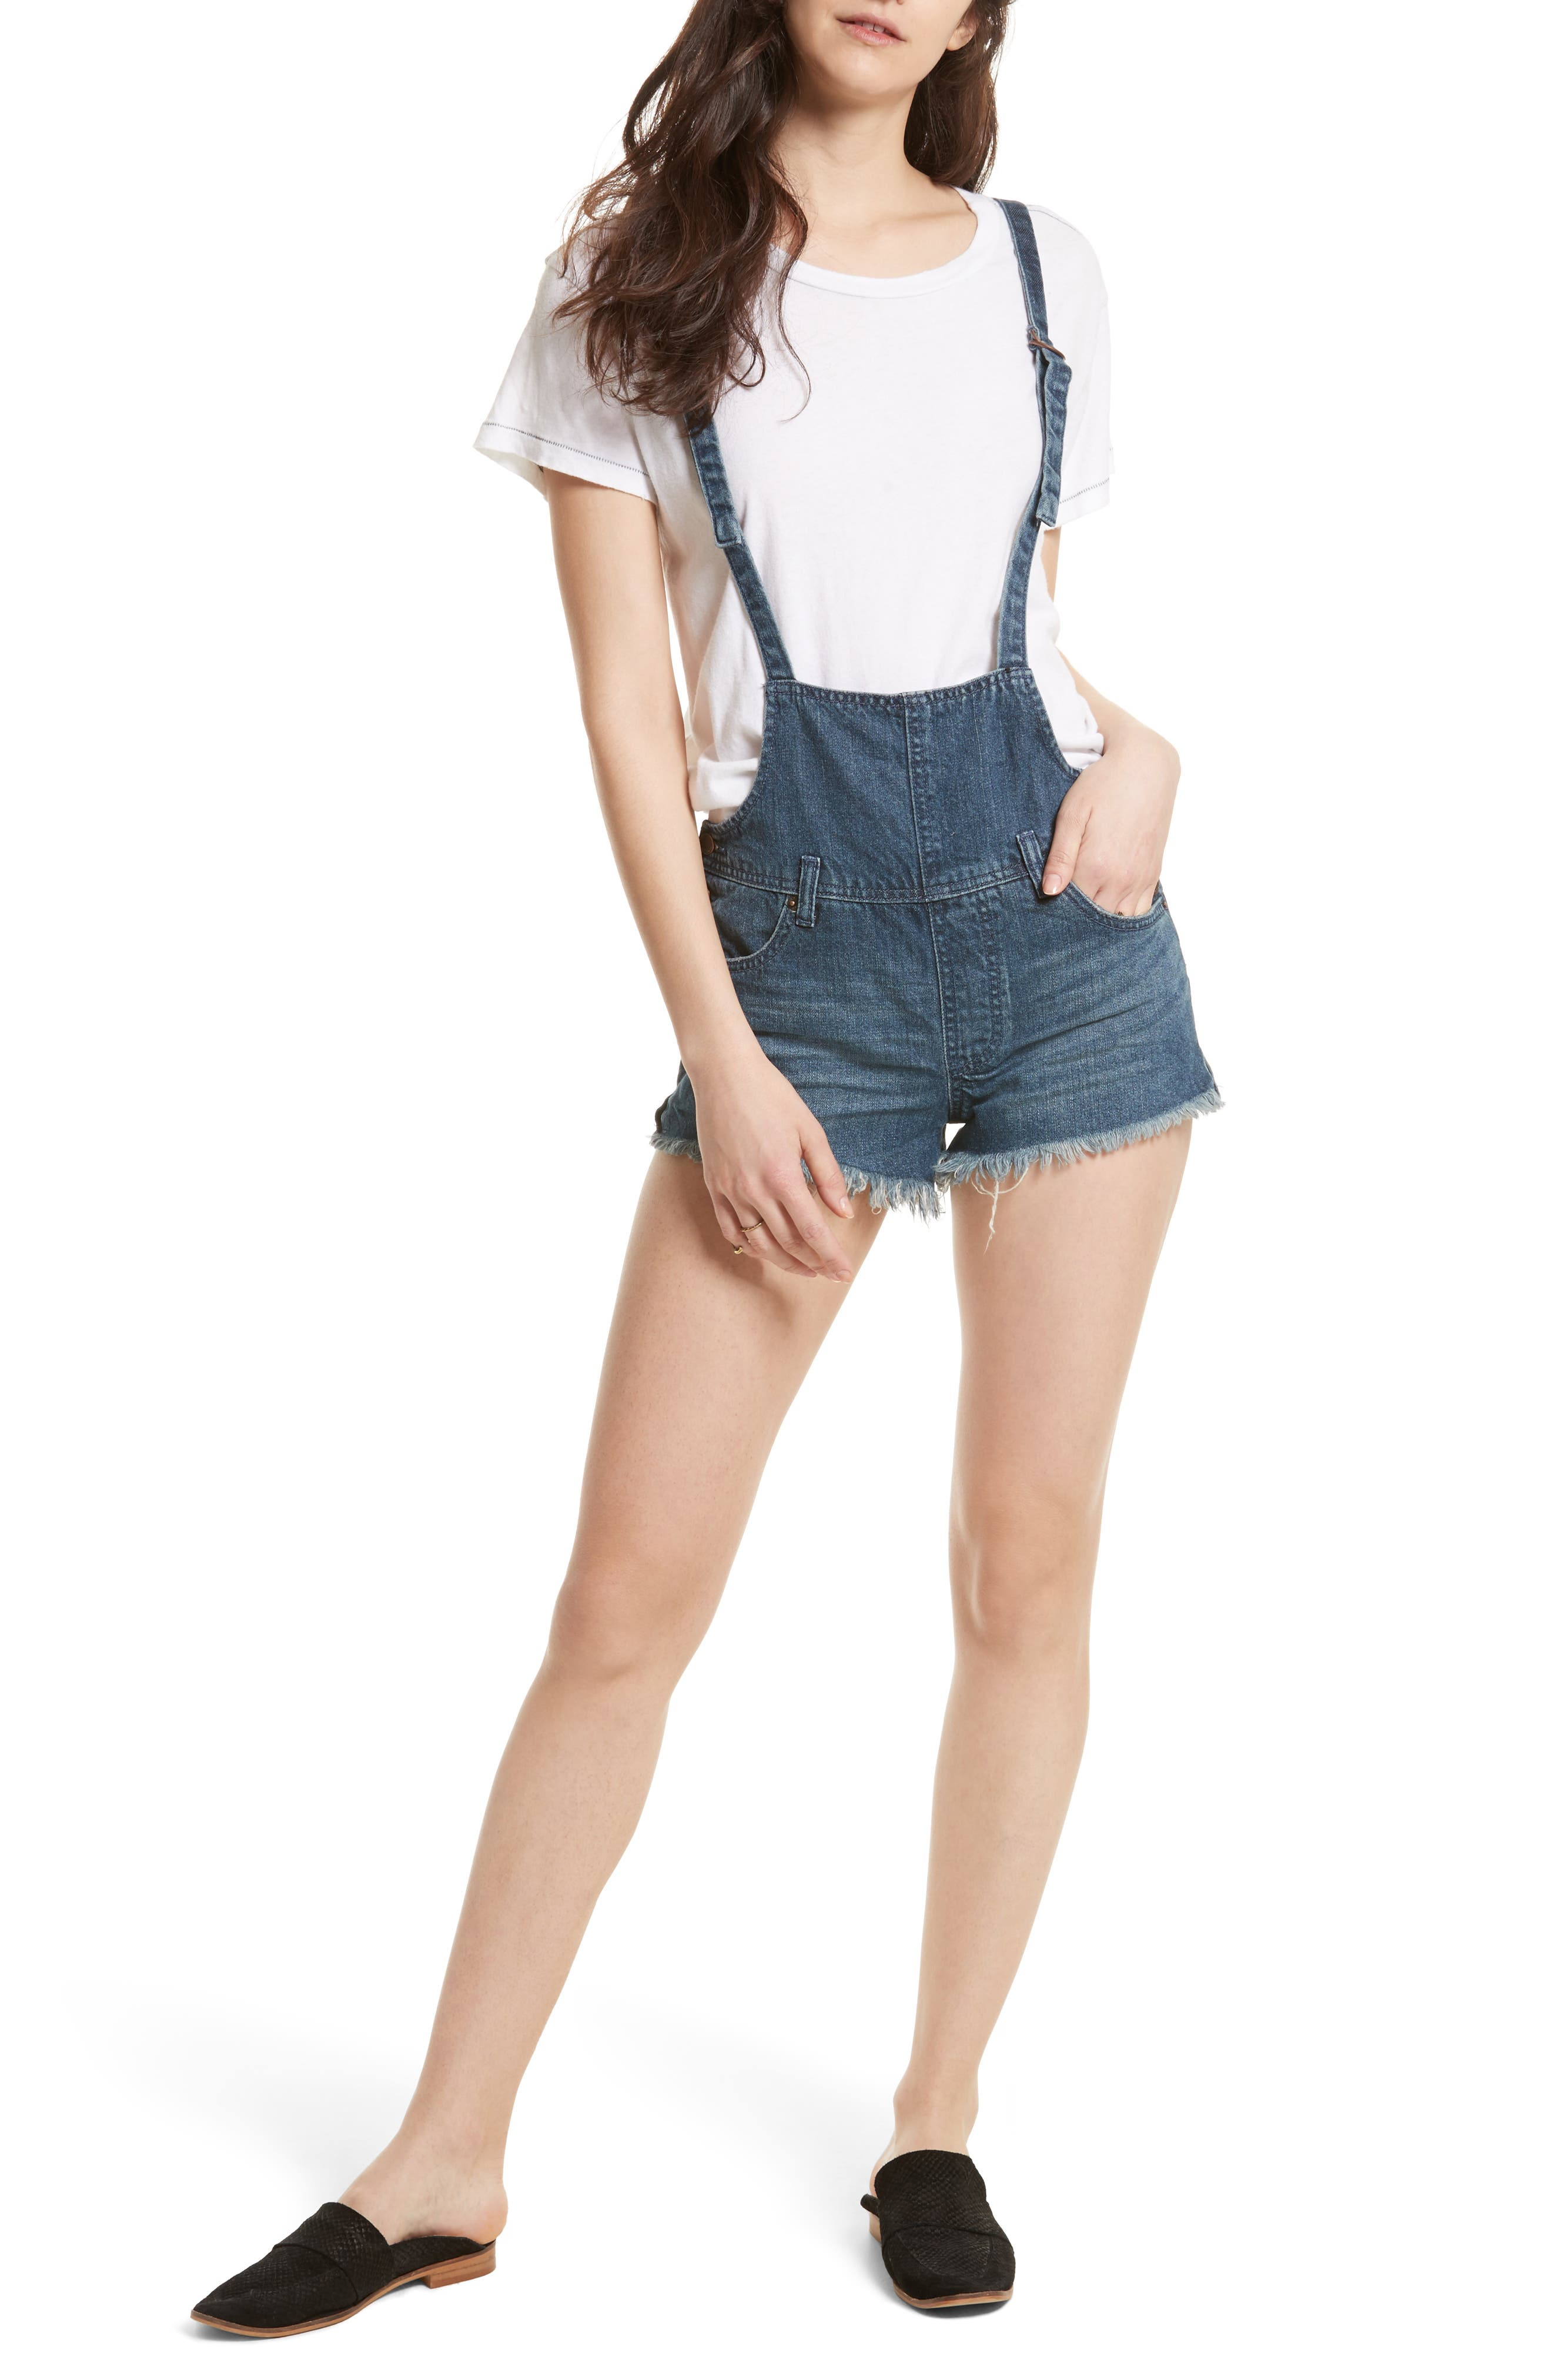 Free People Strappy Denim Short Overalls